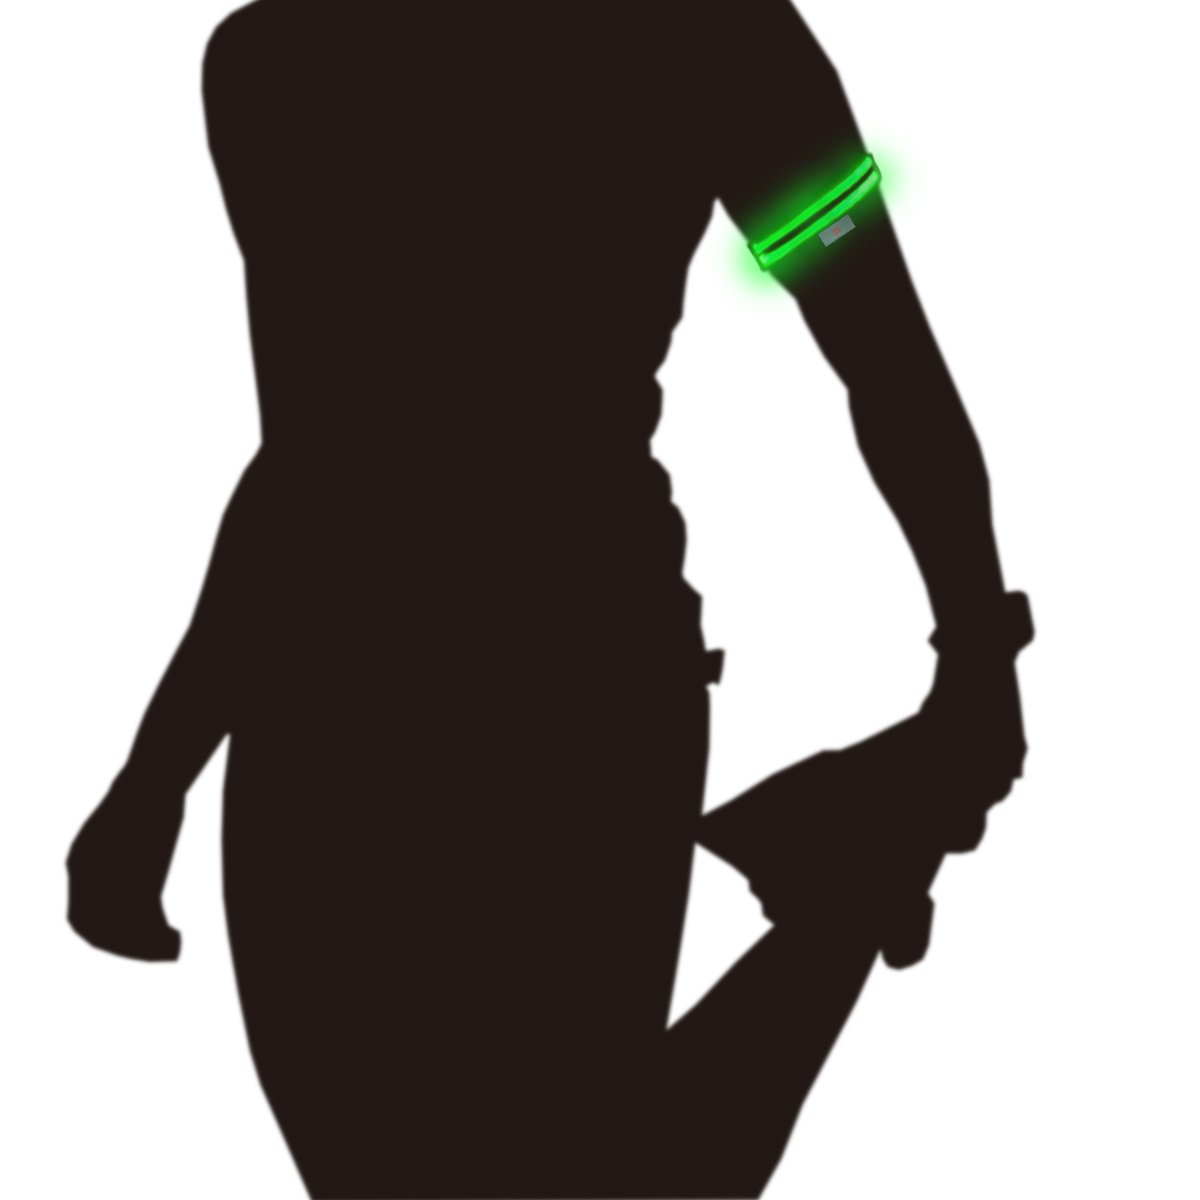 Glowseen Arm Band LED Lamp Dual Light Fiber Light up Glow Bright Sport Fitness Workout Gymnastic Exercise Bodybuilding…